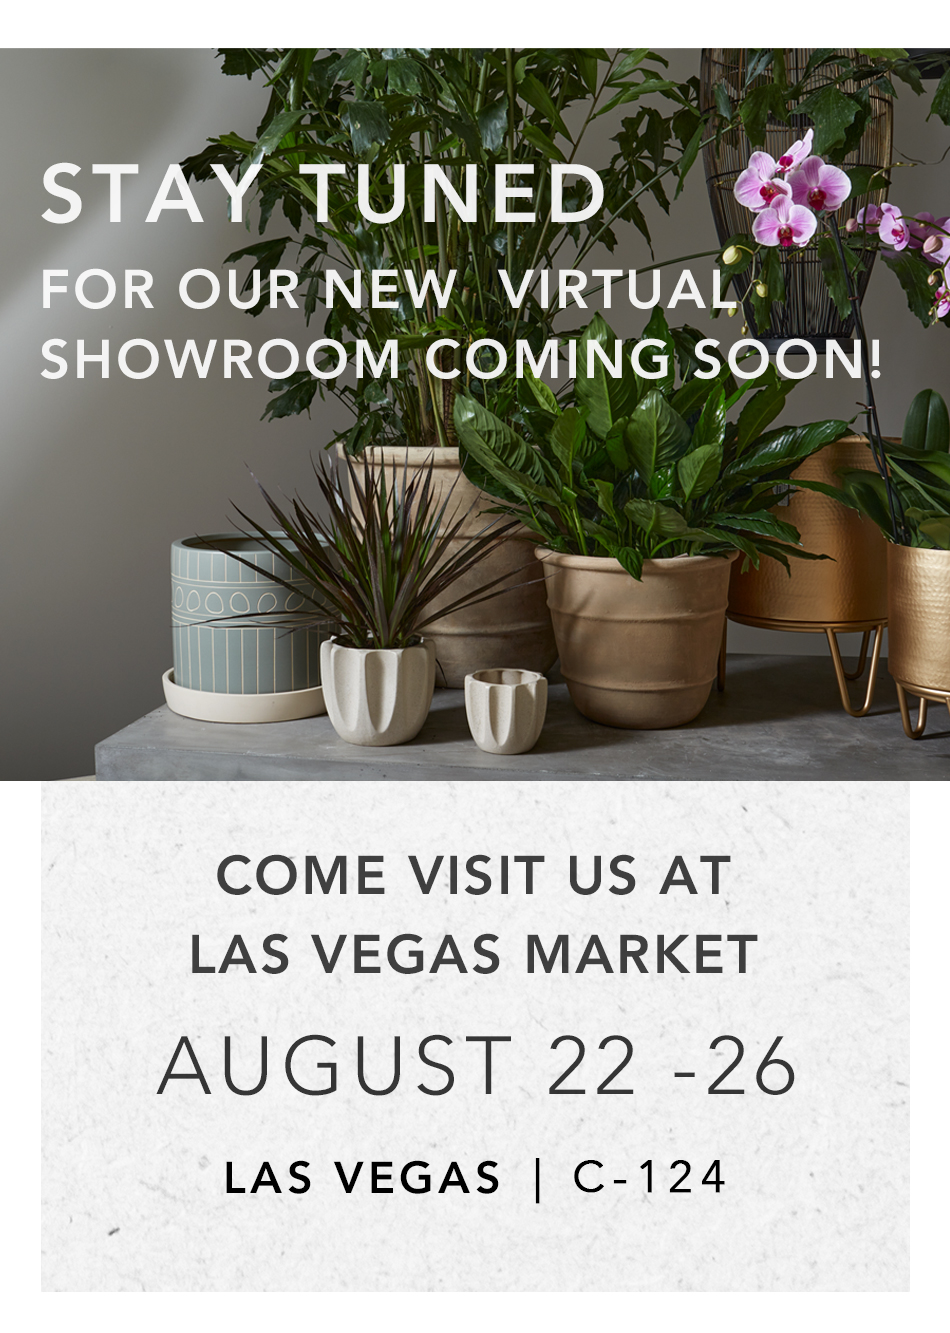 Come Visit us at Las Vegas Market August 22 - 26 & Stay Tuned for our Virtual Showroom!